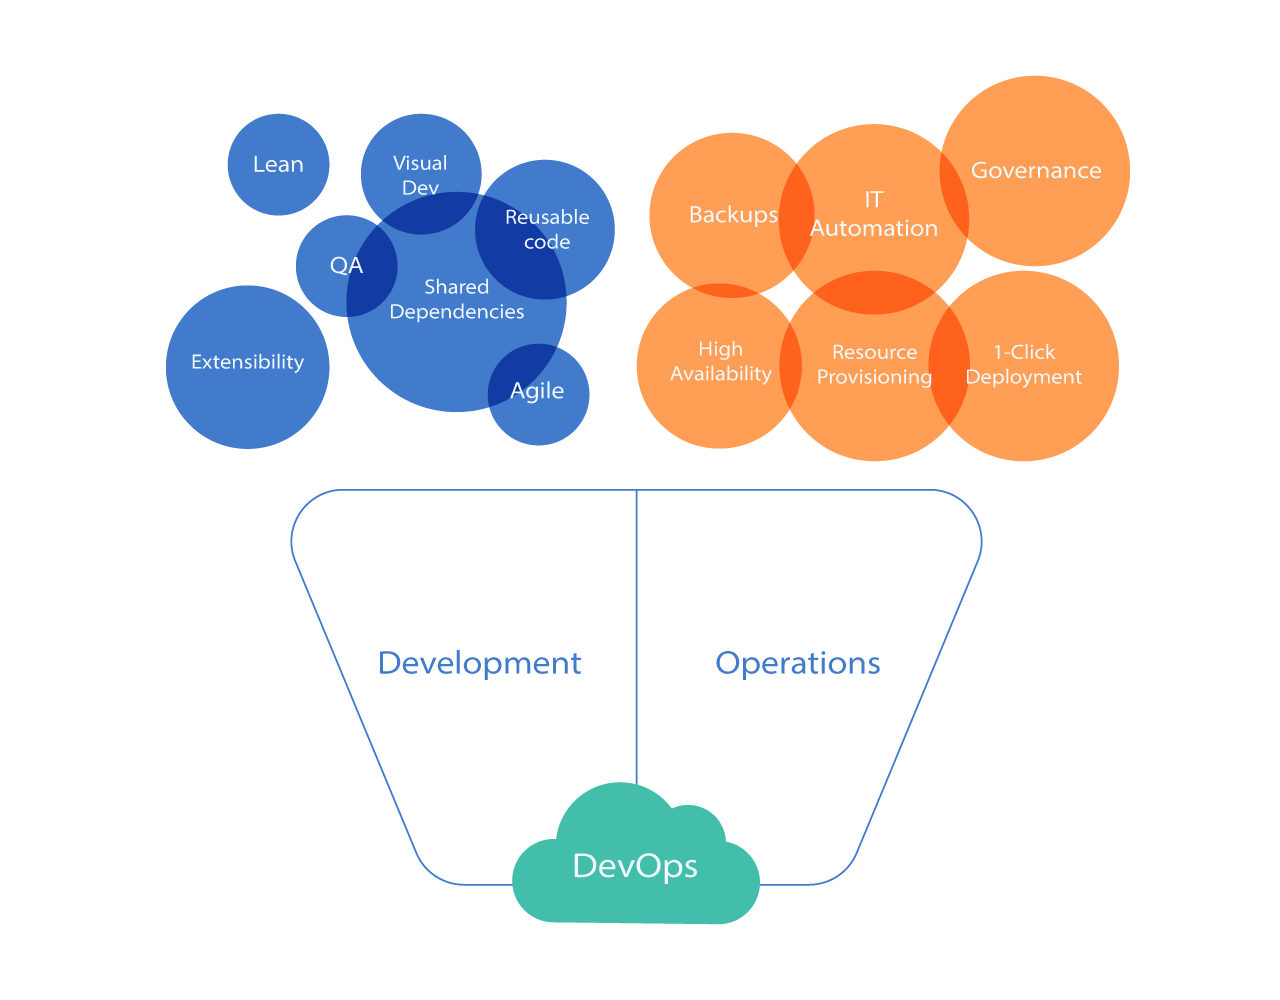 Development + Operations = DevOps